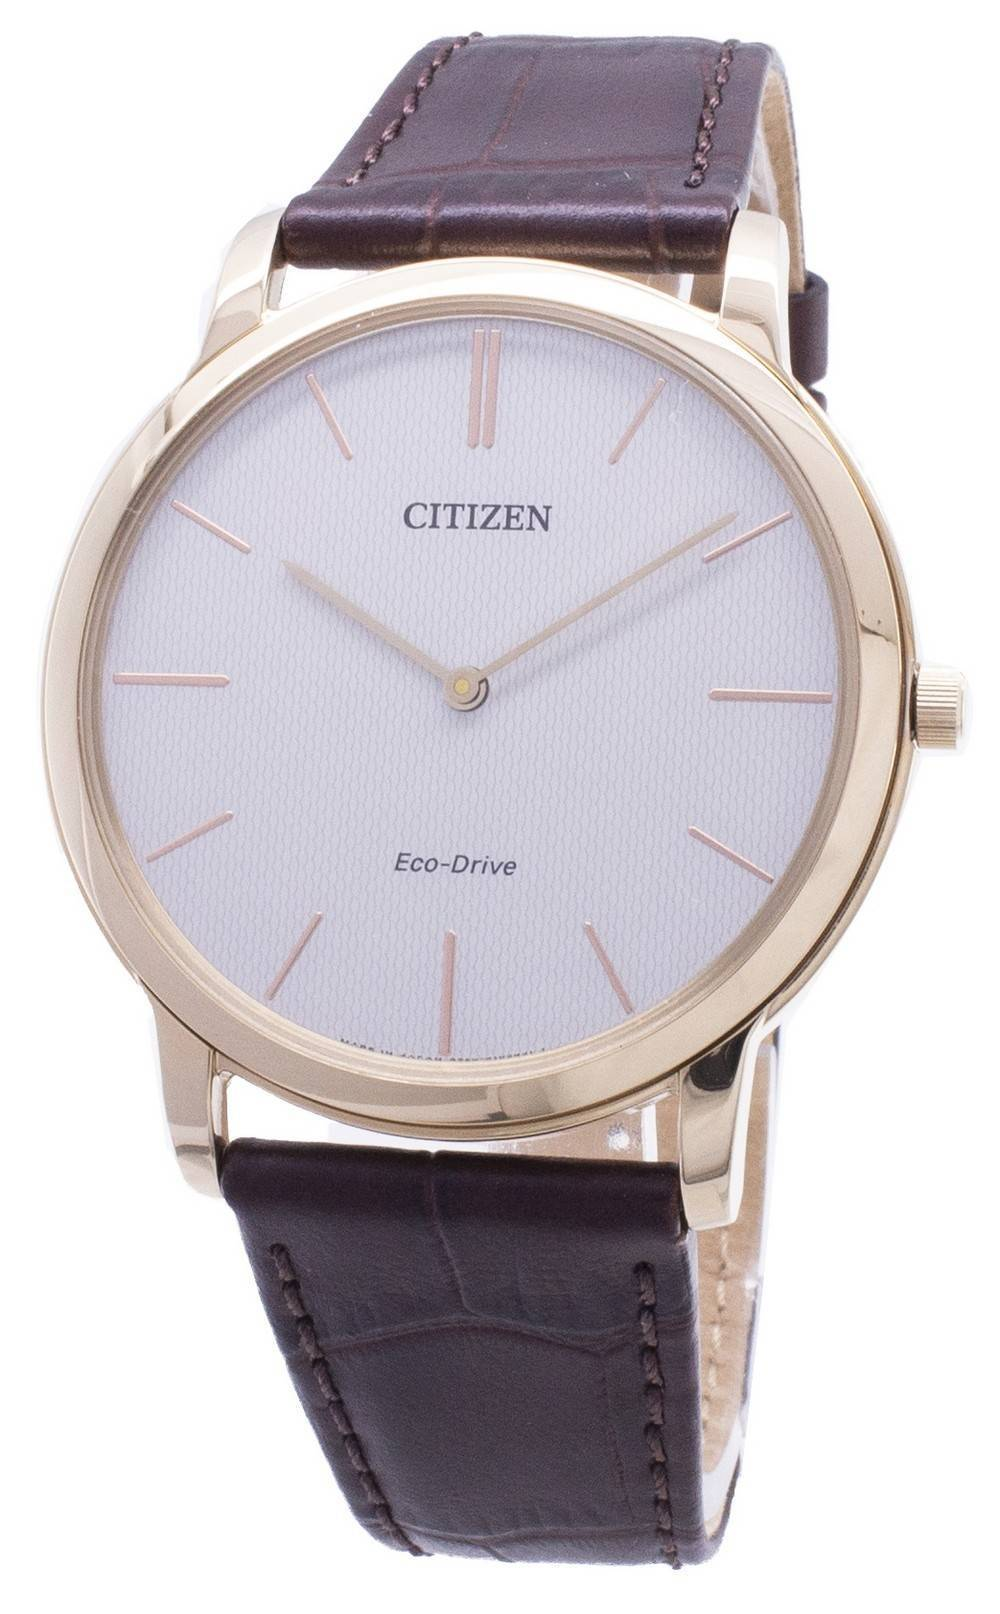 3aad489fd22 Details about Citizen Eco-Drive Stilleto Super Thin AR1113-12A Men s Watch